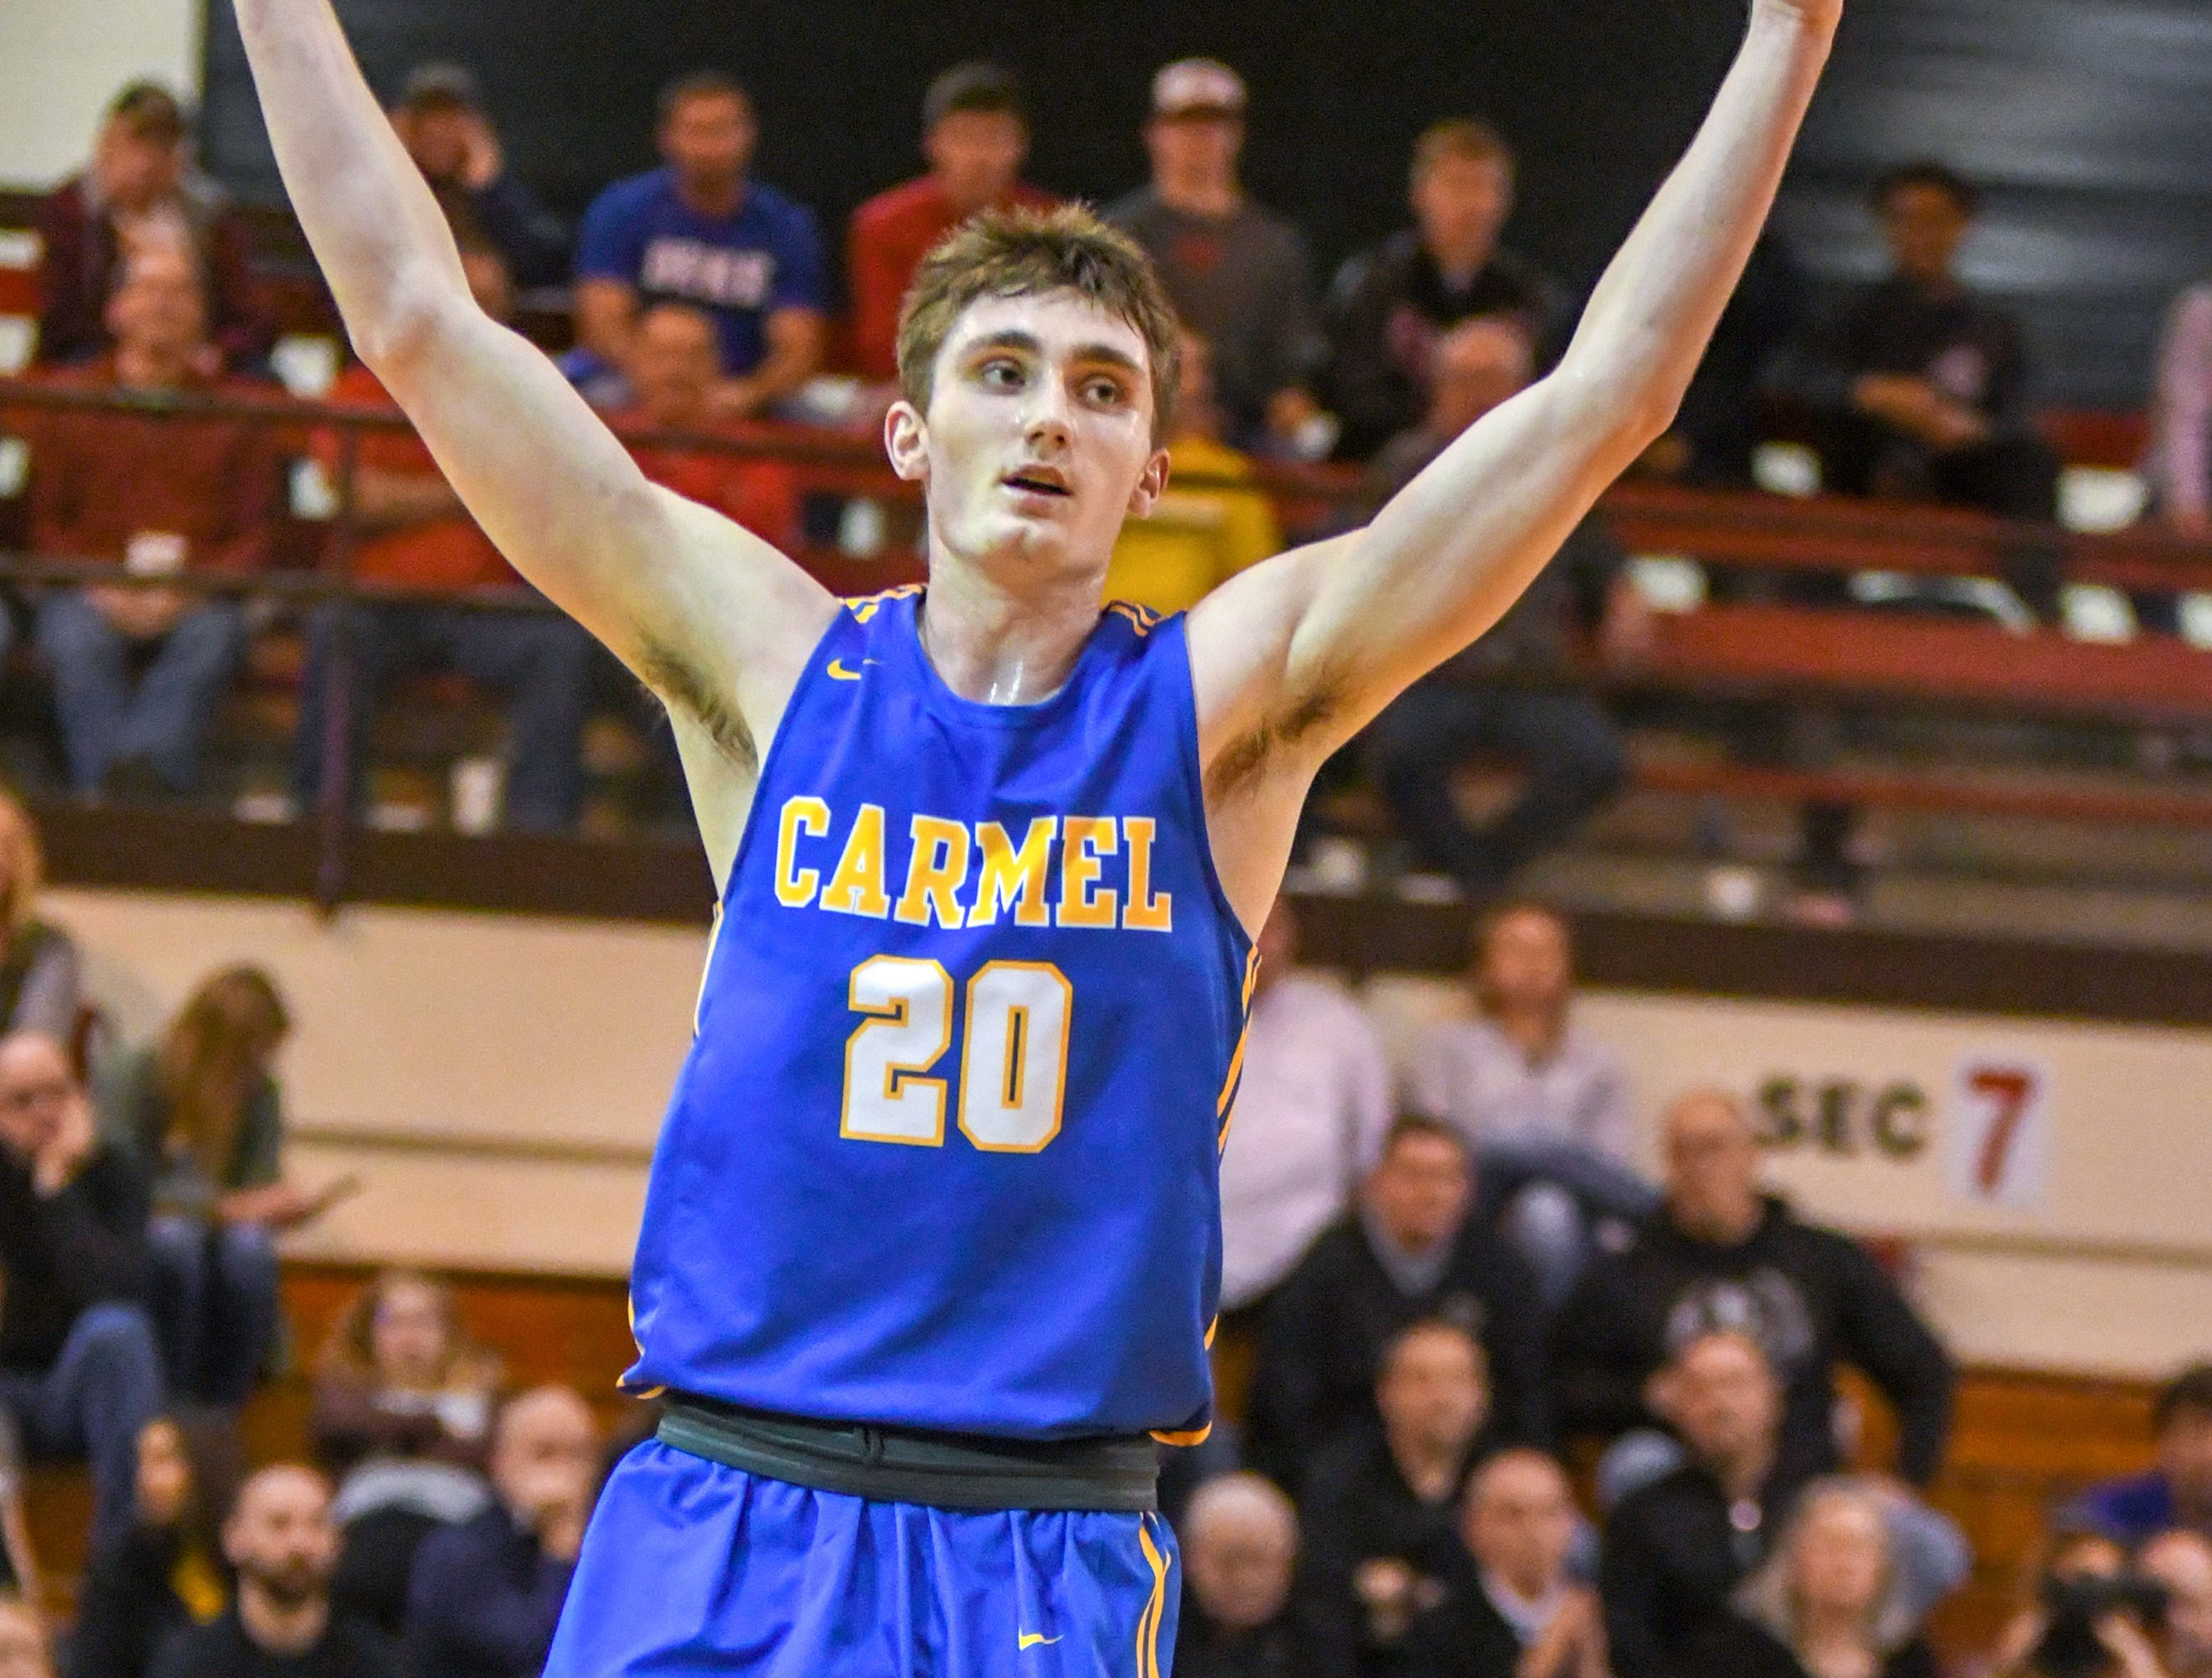 Carmel's Andrew Owens reacts to hitting a three-point shot during his teams 71-42 win over Penn High School in Lafayette on Saturday March 16, 2019. Carmel moves on to the state finals after winning the 4A semi-state today.